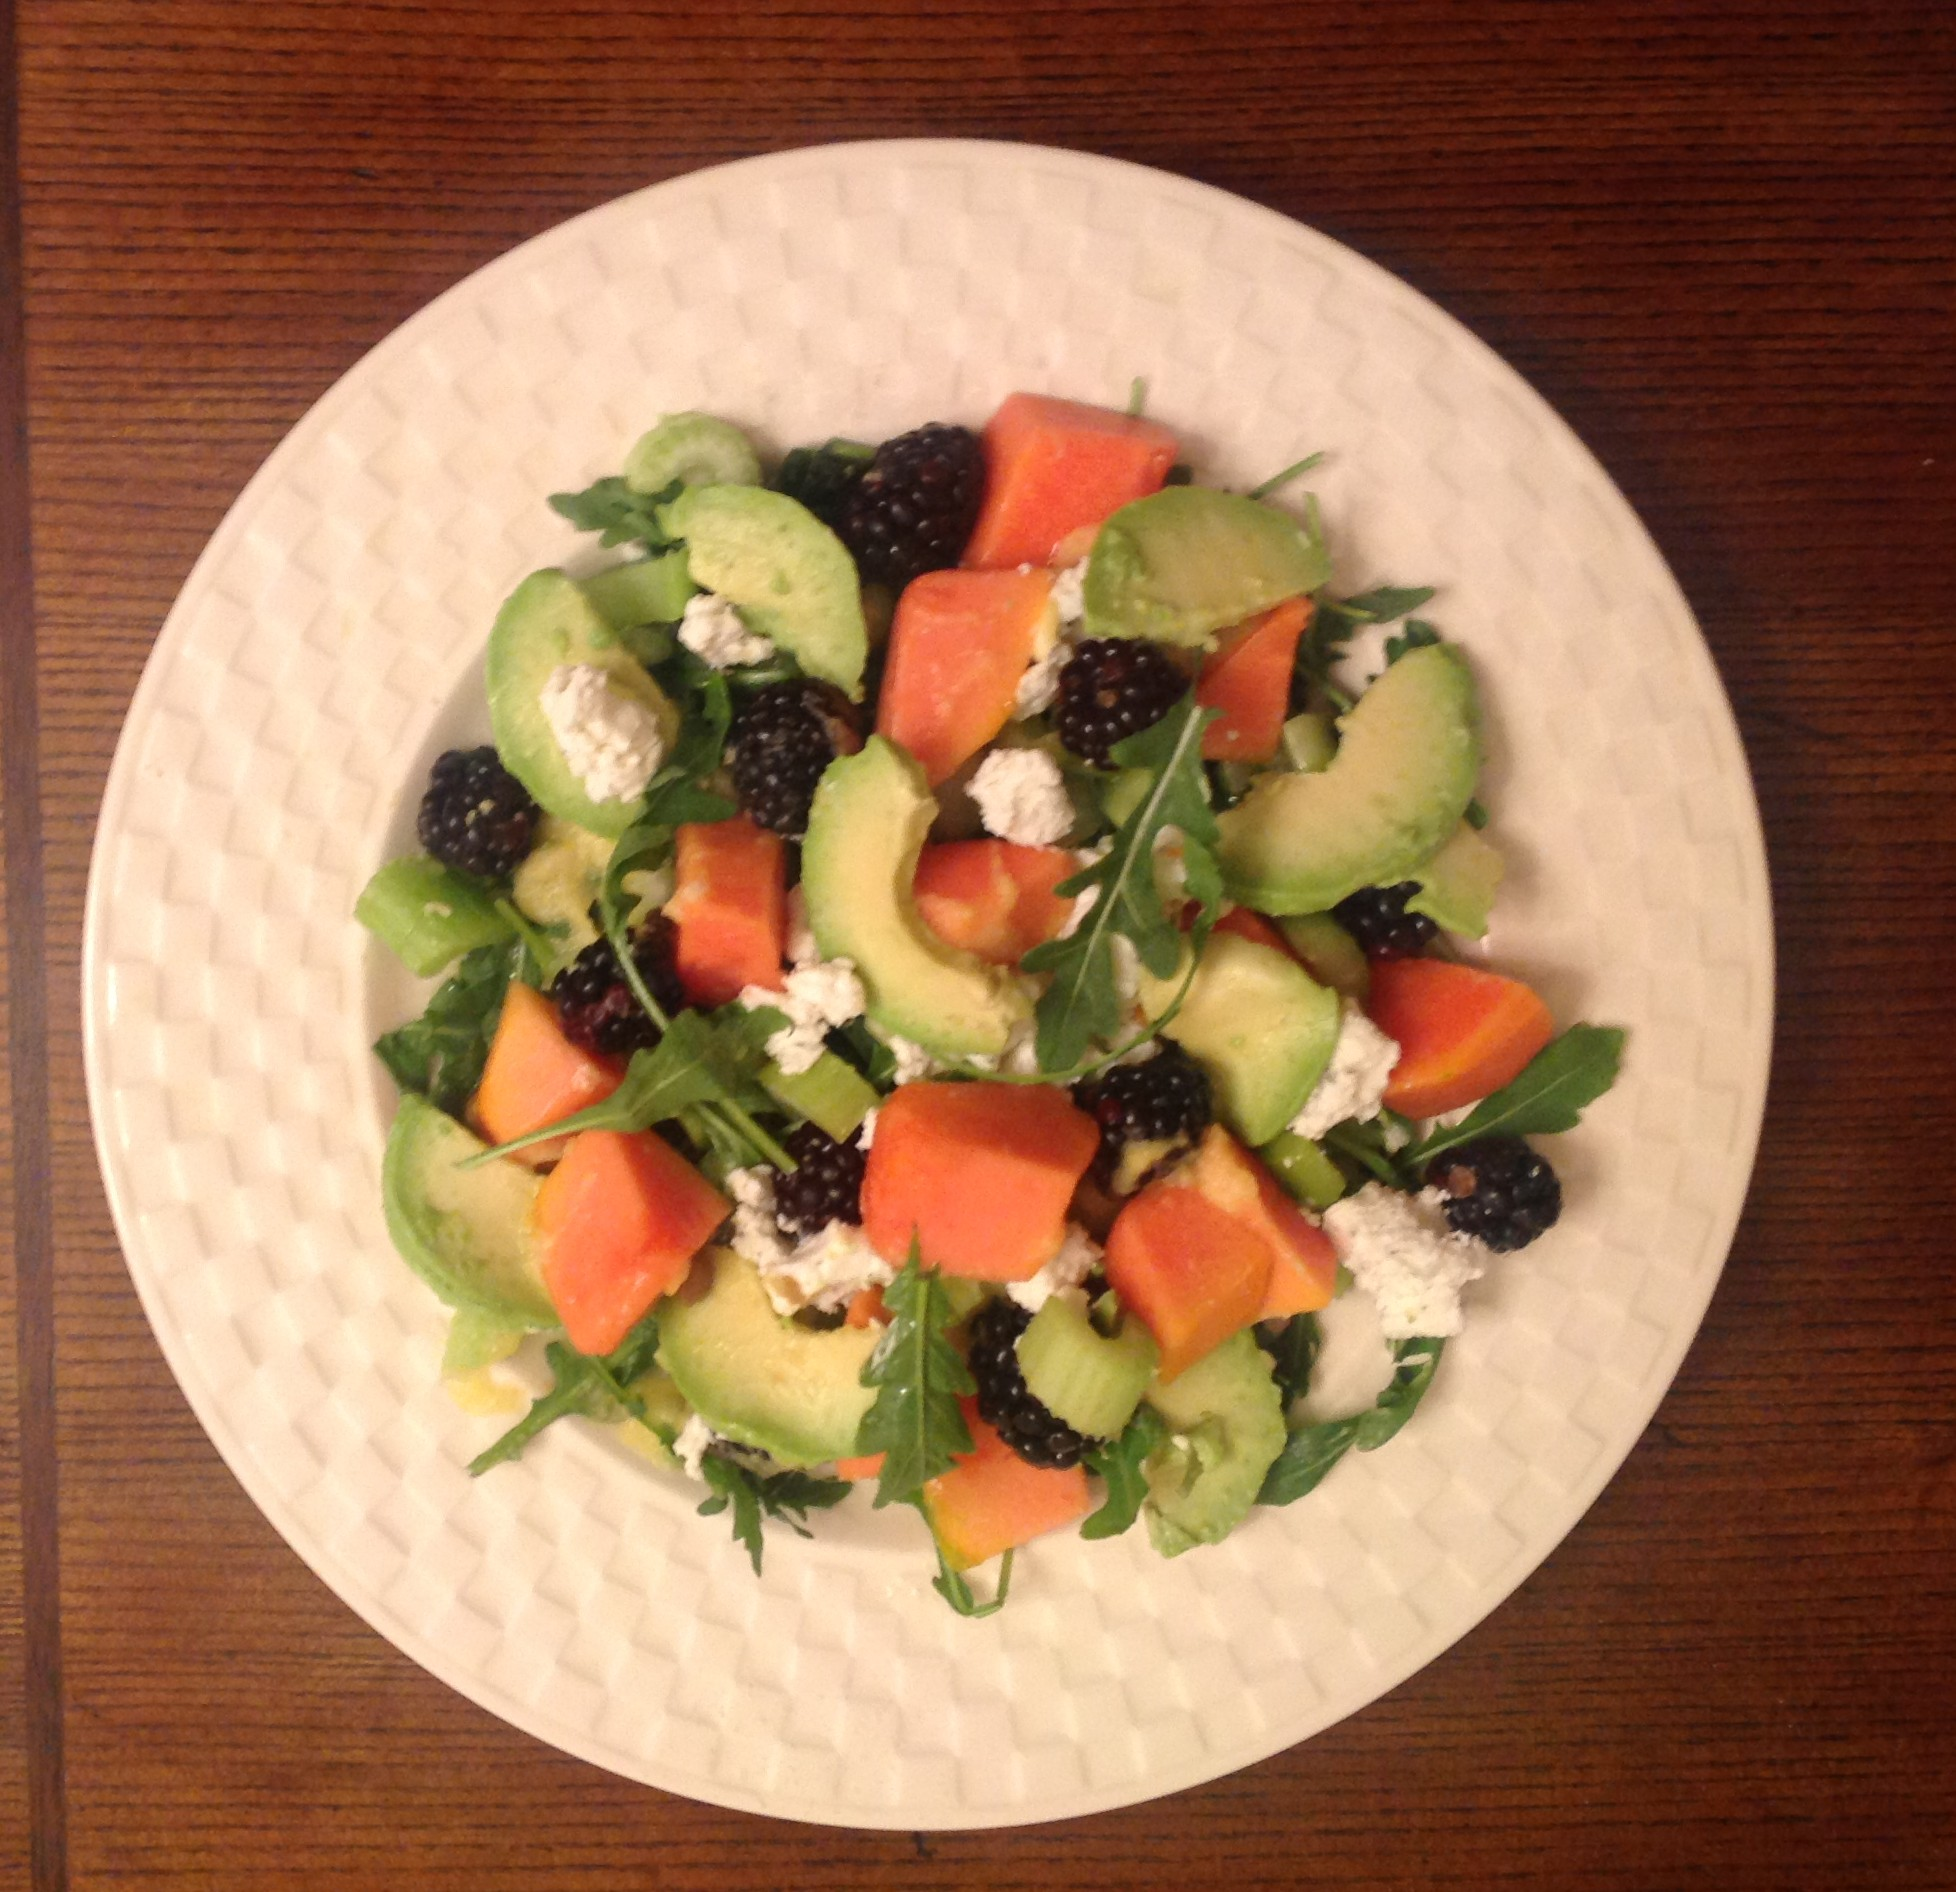 Papaya, Blackberry, Avocado Salad With Pineapple Dresisng | Healthy ...